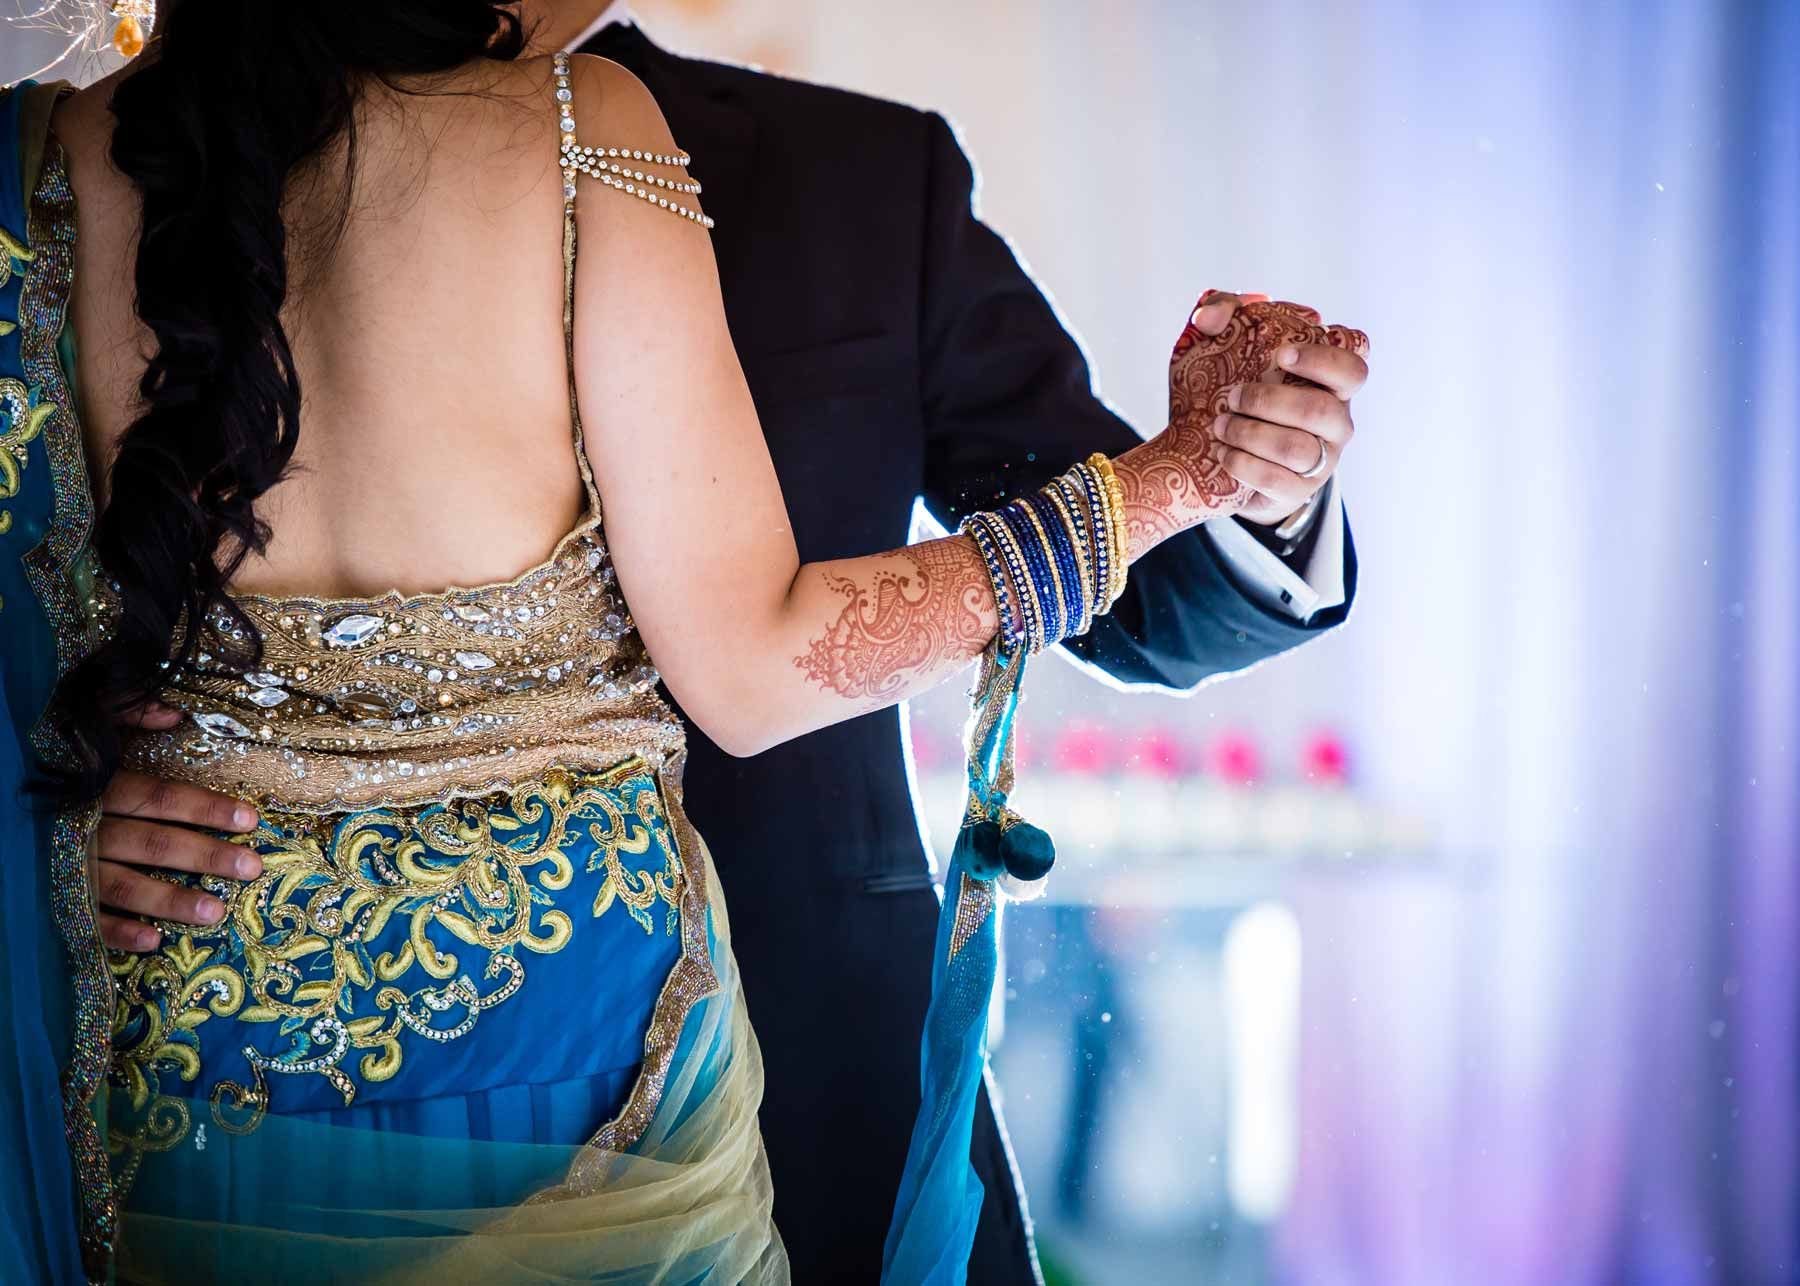 a bride dressed in Indian wedding garments with intricate Henna tattoos on her hand dancing with a man in a black suit